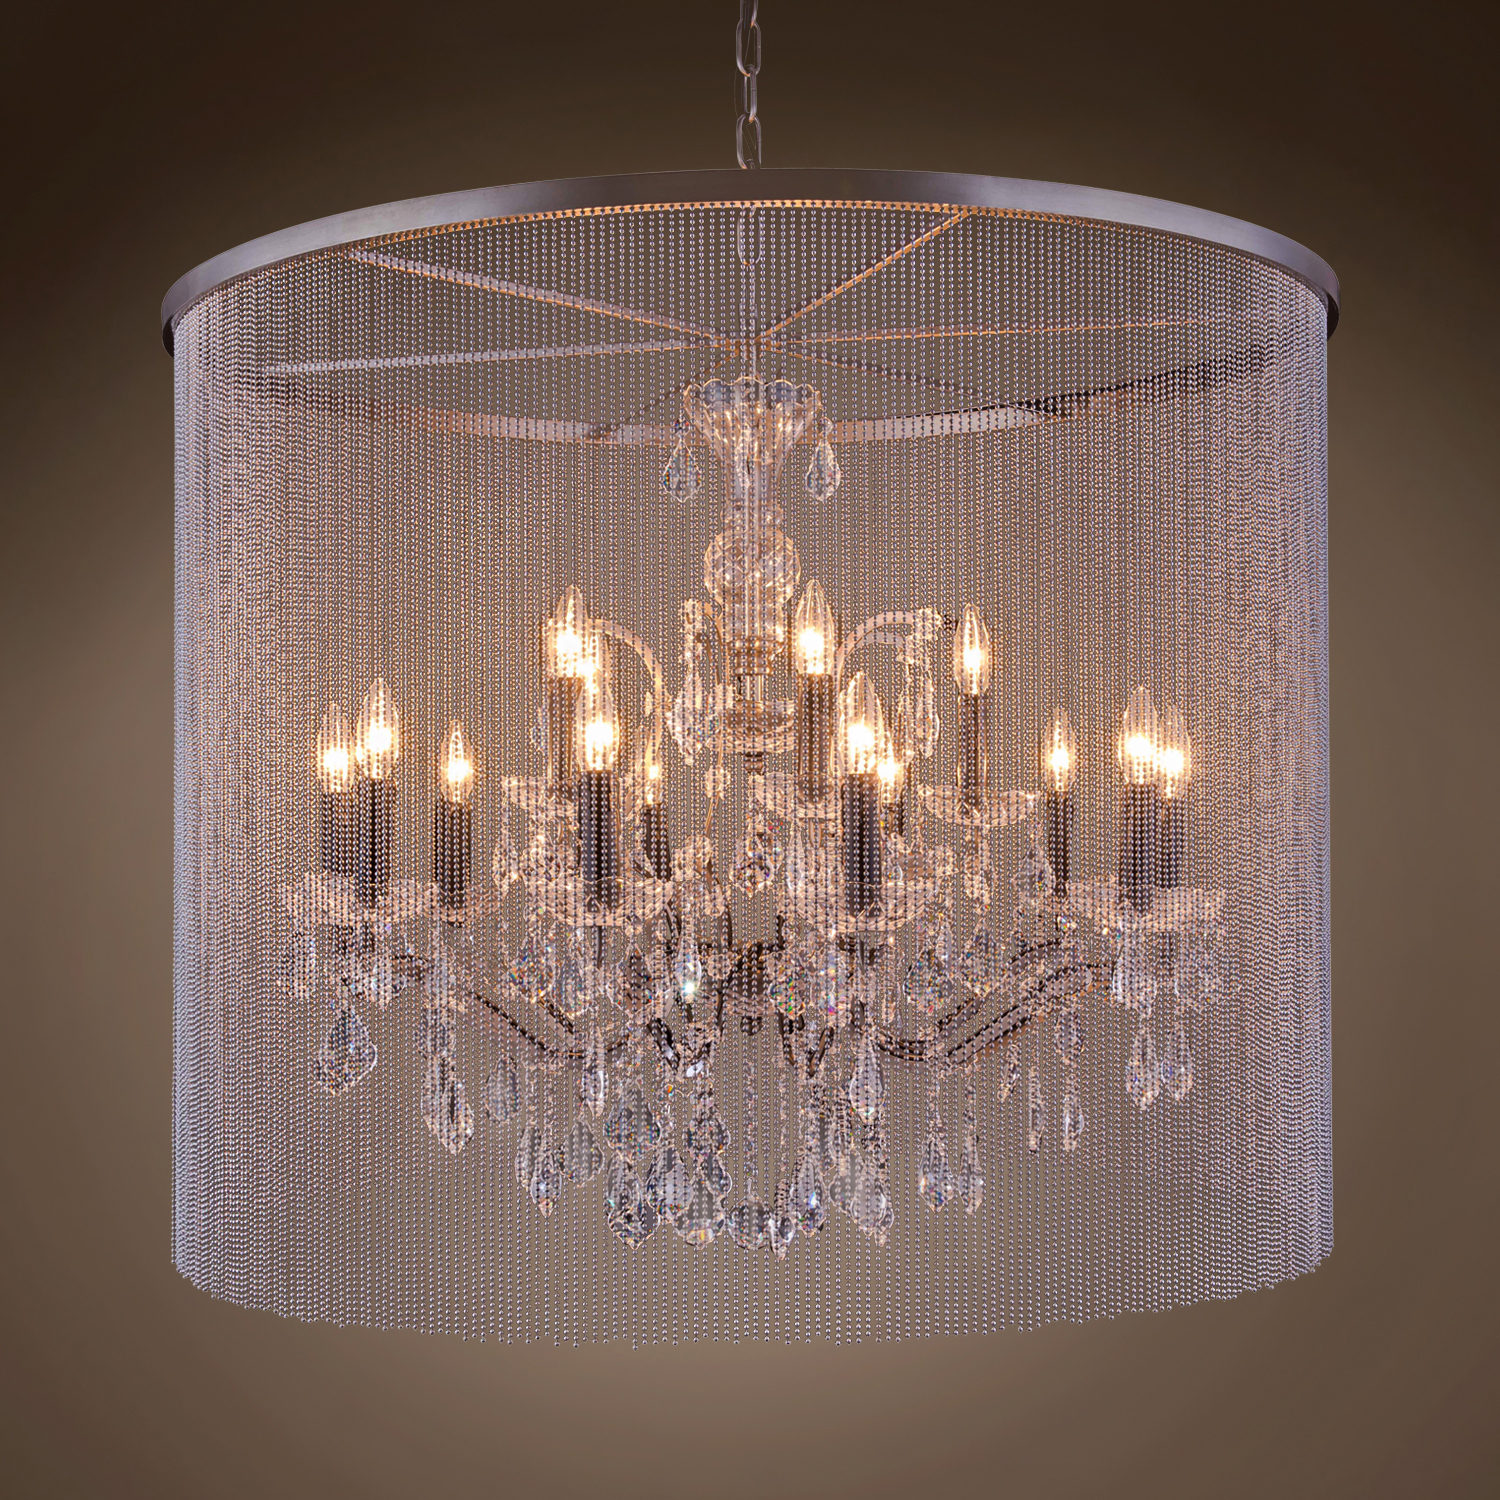 crystal in graphite shown troy light iron and meritage cfm chandelier wide item inch lighting finish